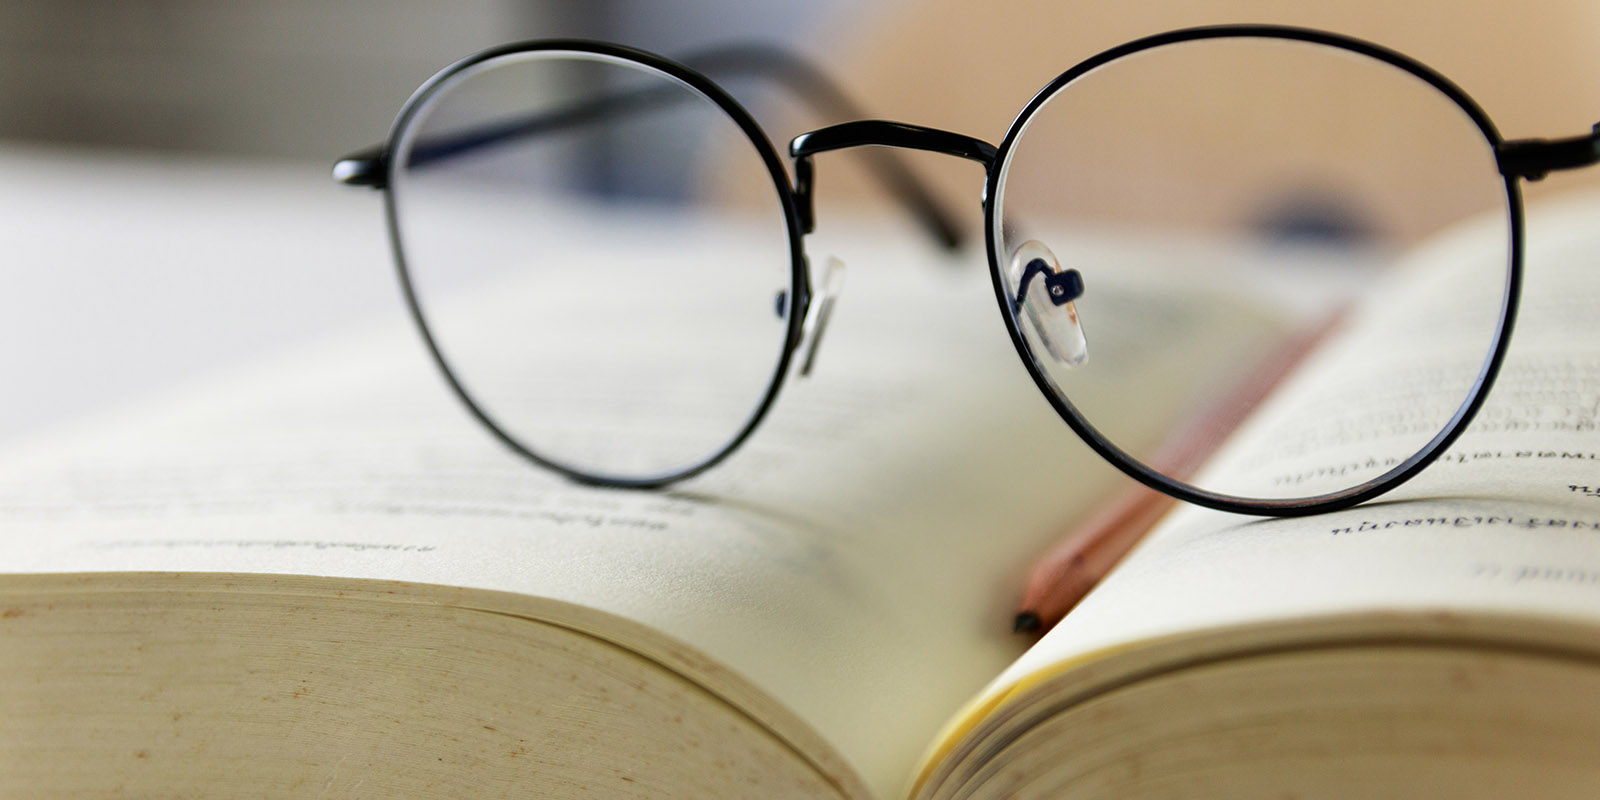 Reading glasses placed on open books